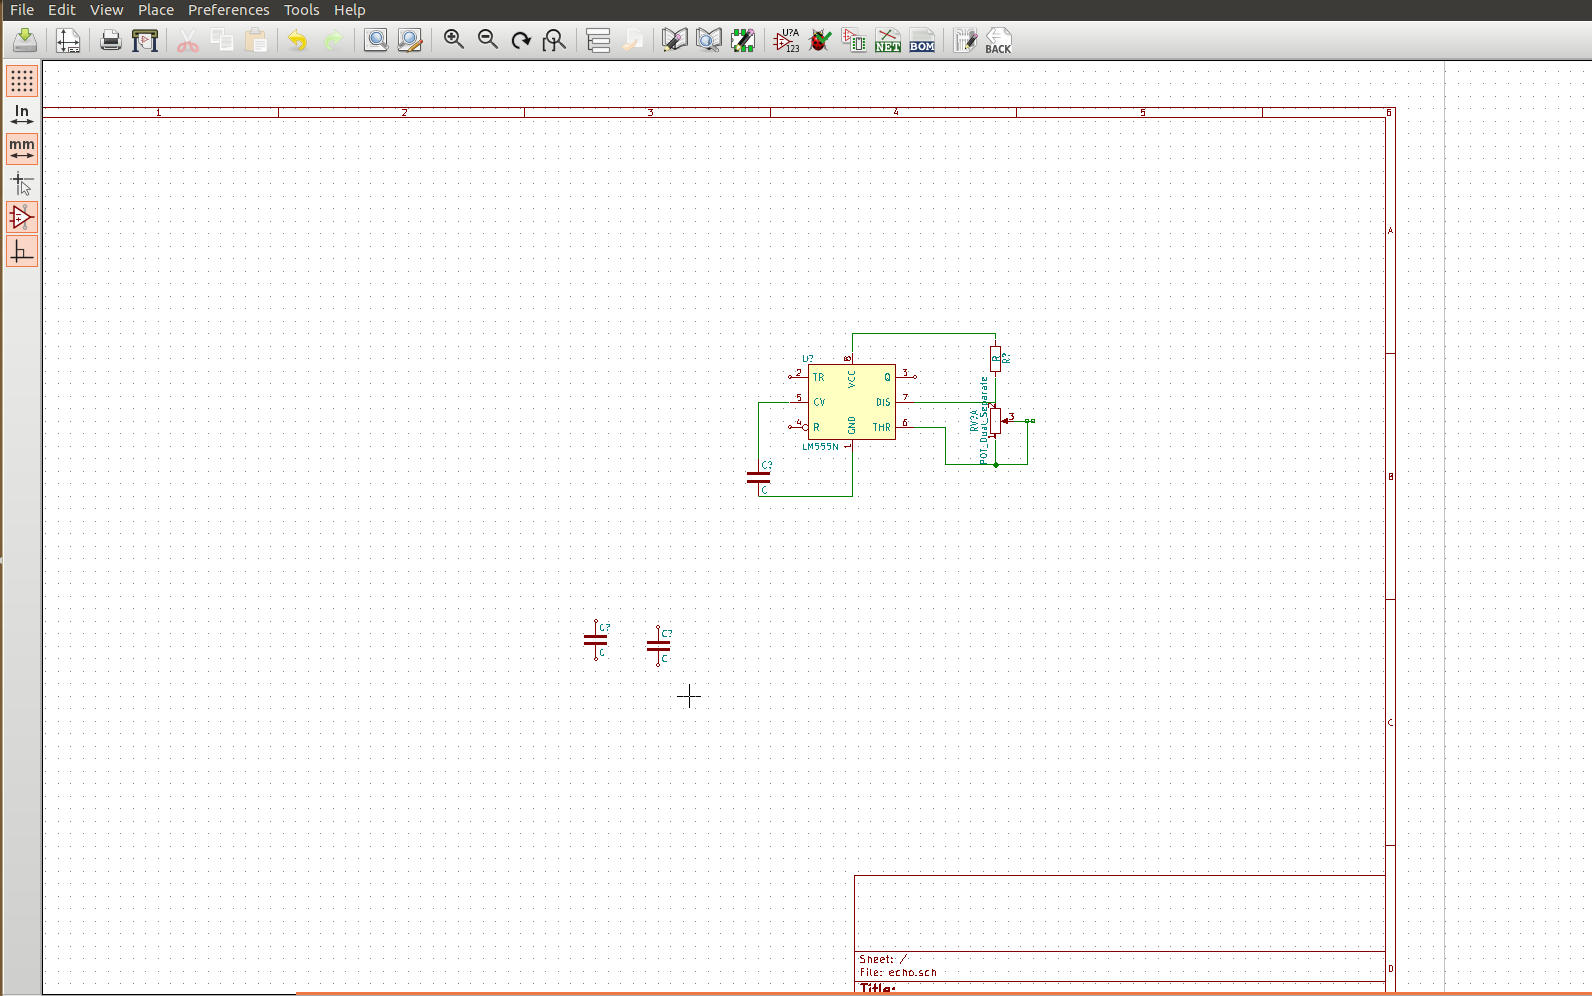 Ajiths Fab Diary 2017 Make This Electronic Mosquito Repeller Circuit Diagram I Started The Design Of In Kicad As It Requires Ic555 Timer Was There Its Default Library And Placed Other Components Like